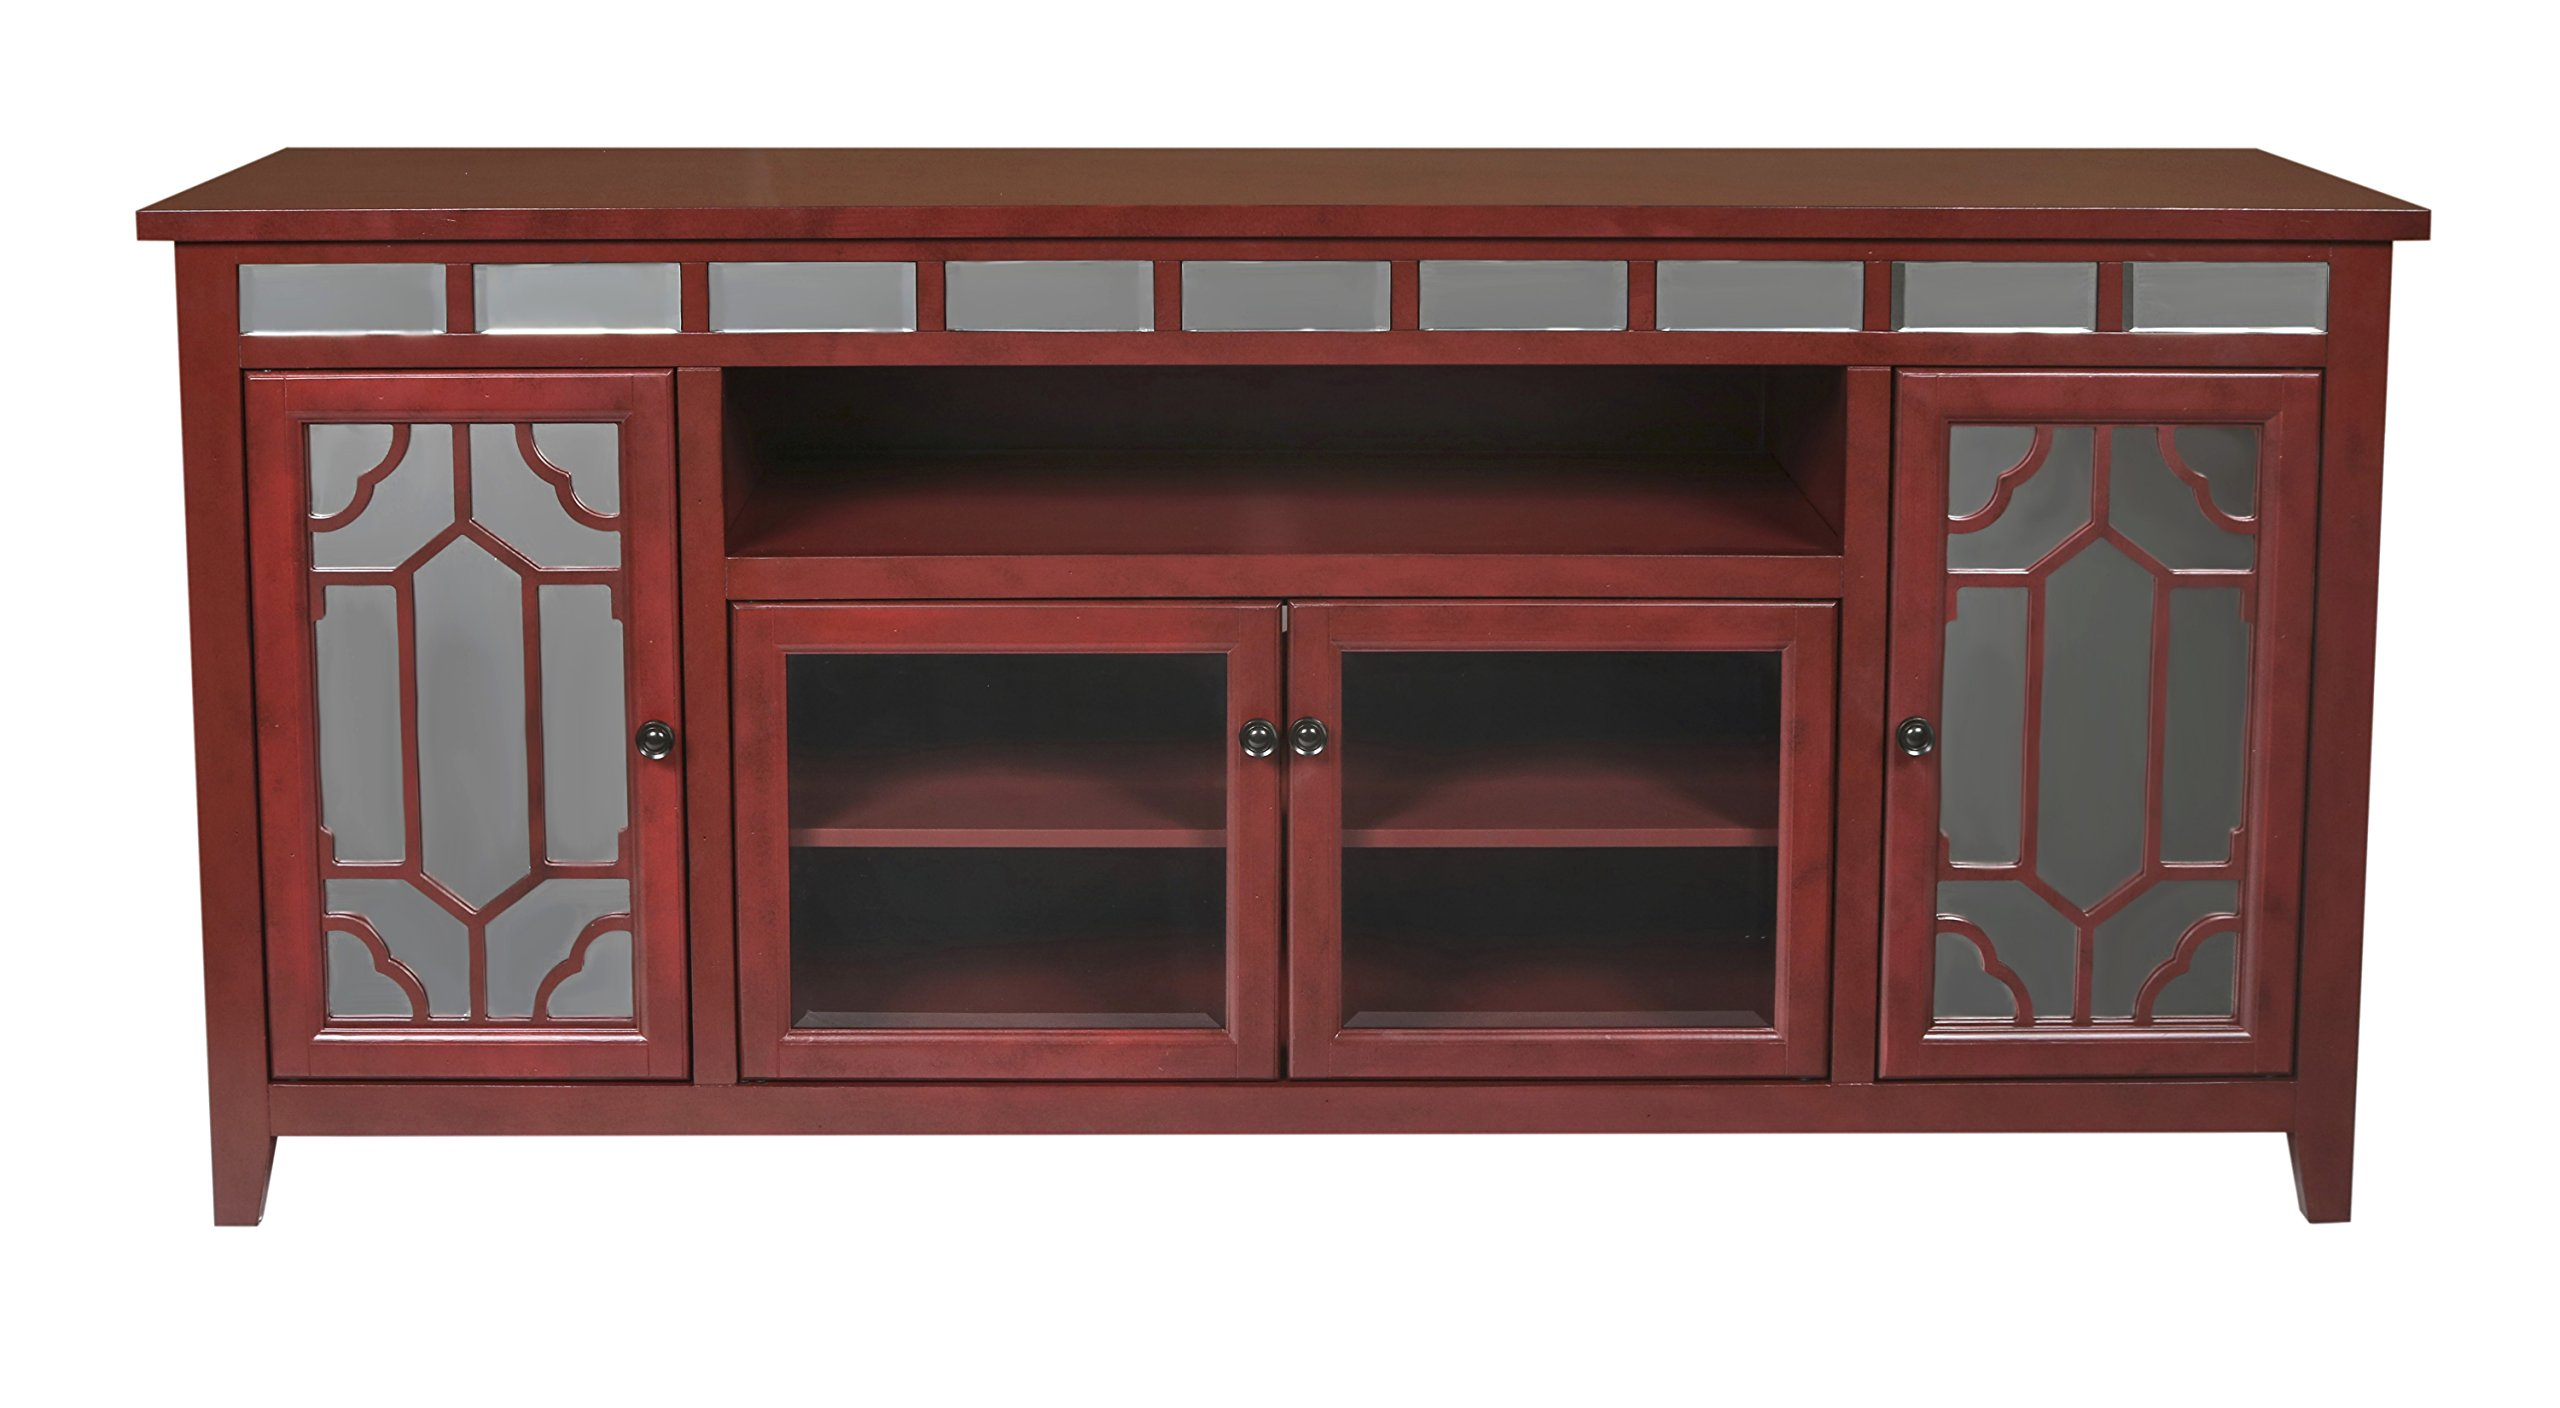 New Classic Gable End Unit, 72-Inch, Red